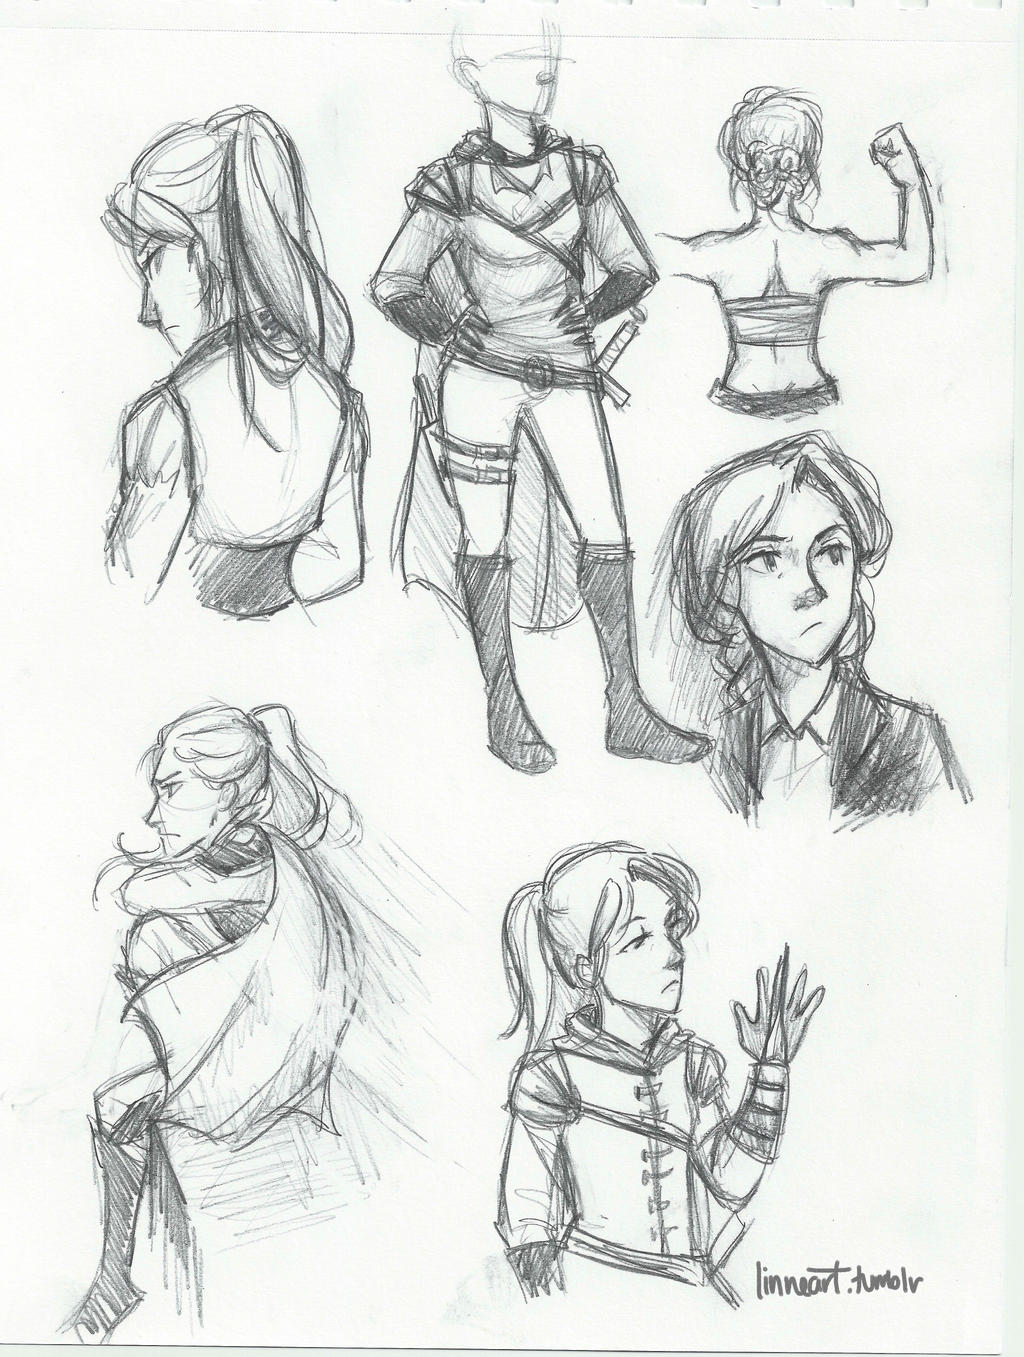 Sketchesofsam Sssh Critical Role Is: Celaena Sketch Sheet By Compoundbreadd On DeviantArt